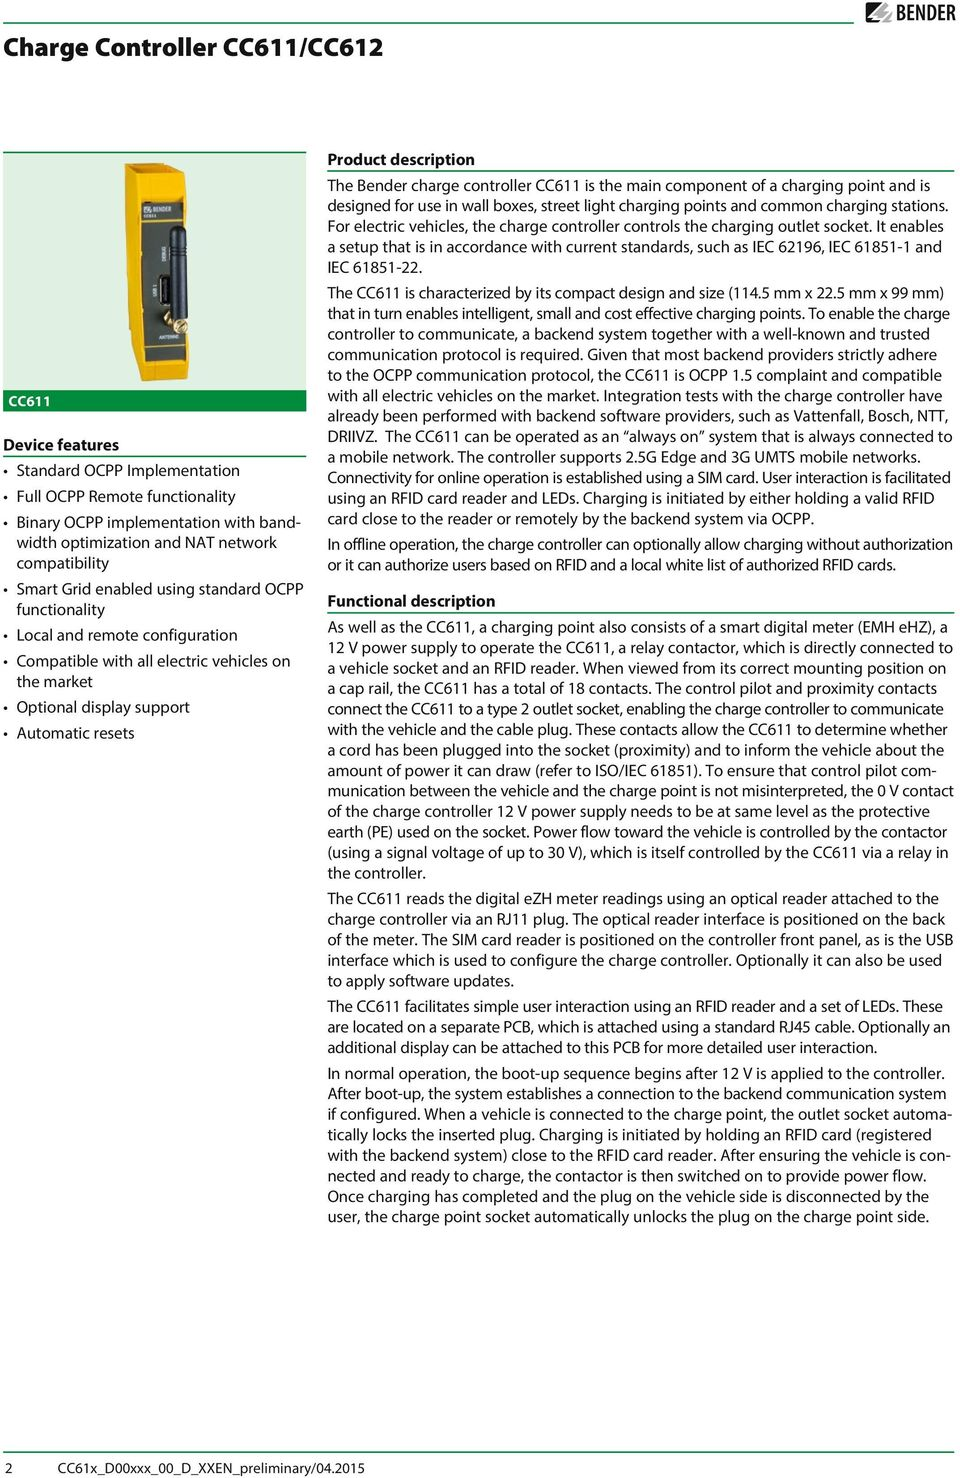 Charge Controller Cc611 Cc612 Preliminary Datasheet Pdf Electricvehicles Ssr Solid State Relay Device Features Standard Ocpp Implementation Full Remote Functionality Inary With Bandwidth Optimization